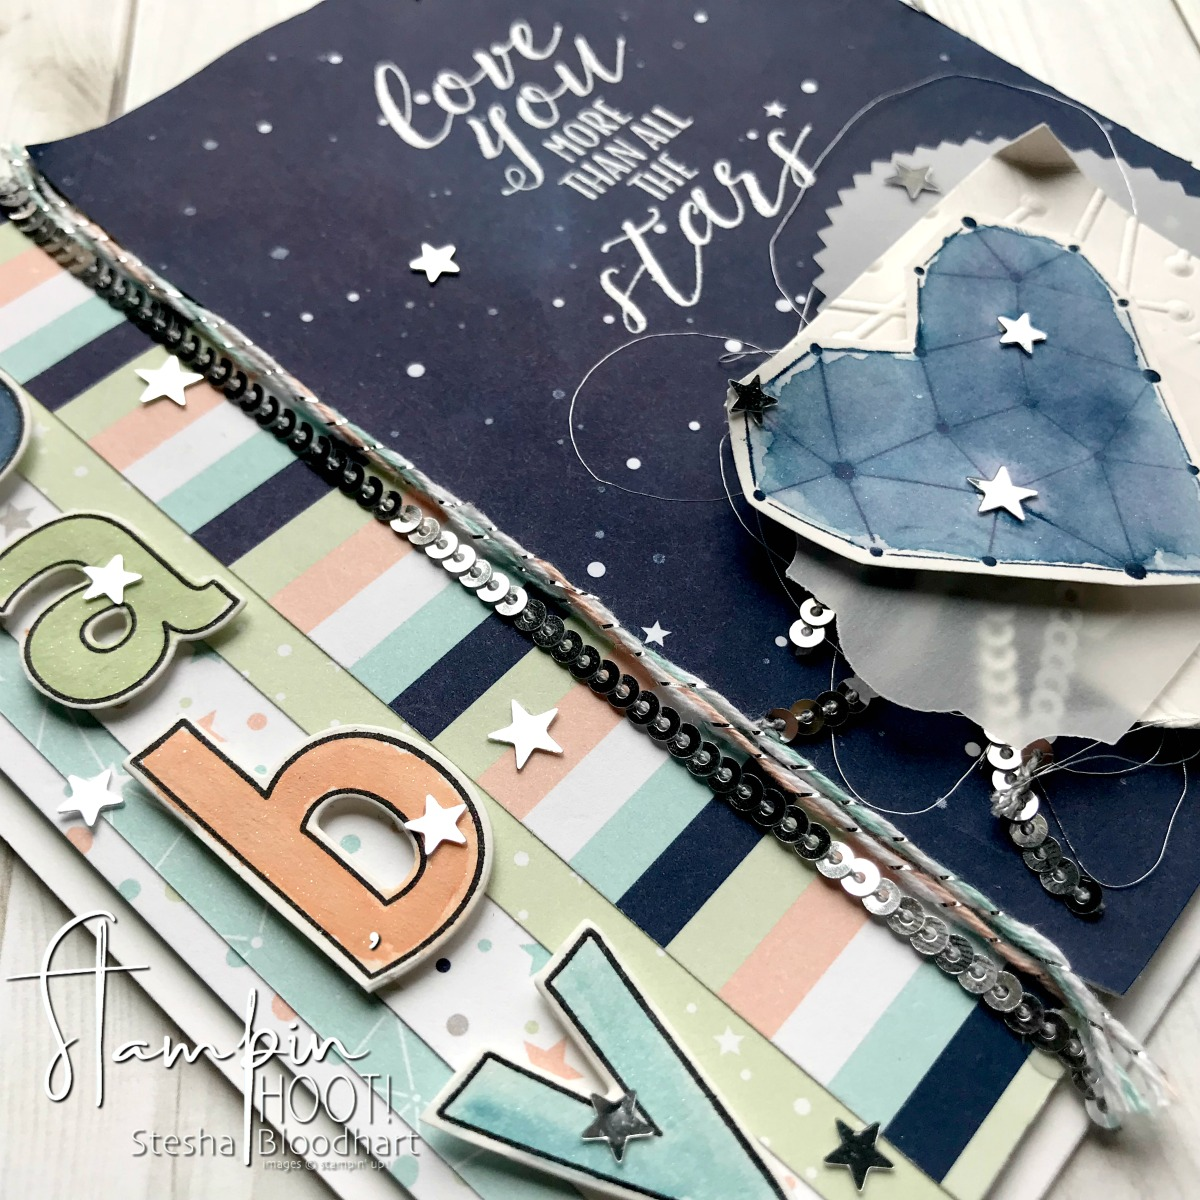 Twinkle Twinkle Designer Series Paper and Little Twinkle Stamp Set by Stampin' Up! for the Pals Blog Hop. Card created by Stesha Bloodhart, Stampin' Hoot! #steshabloodhart #stampinhoot